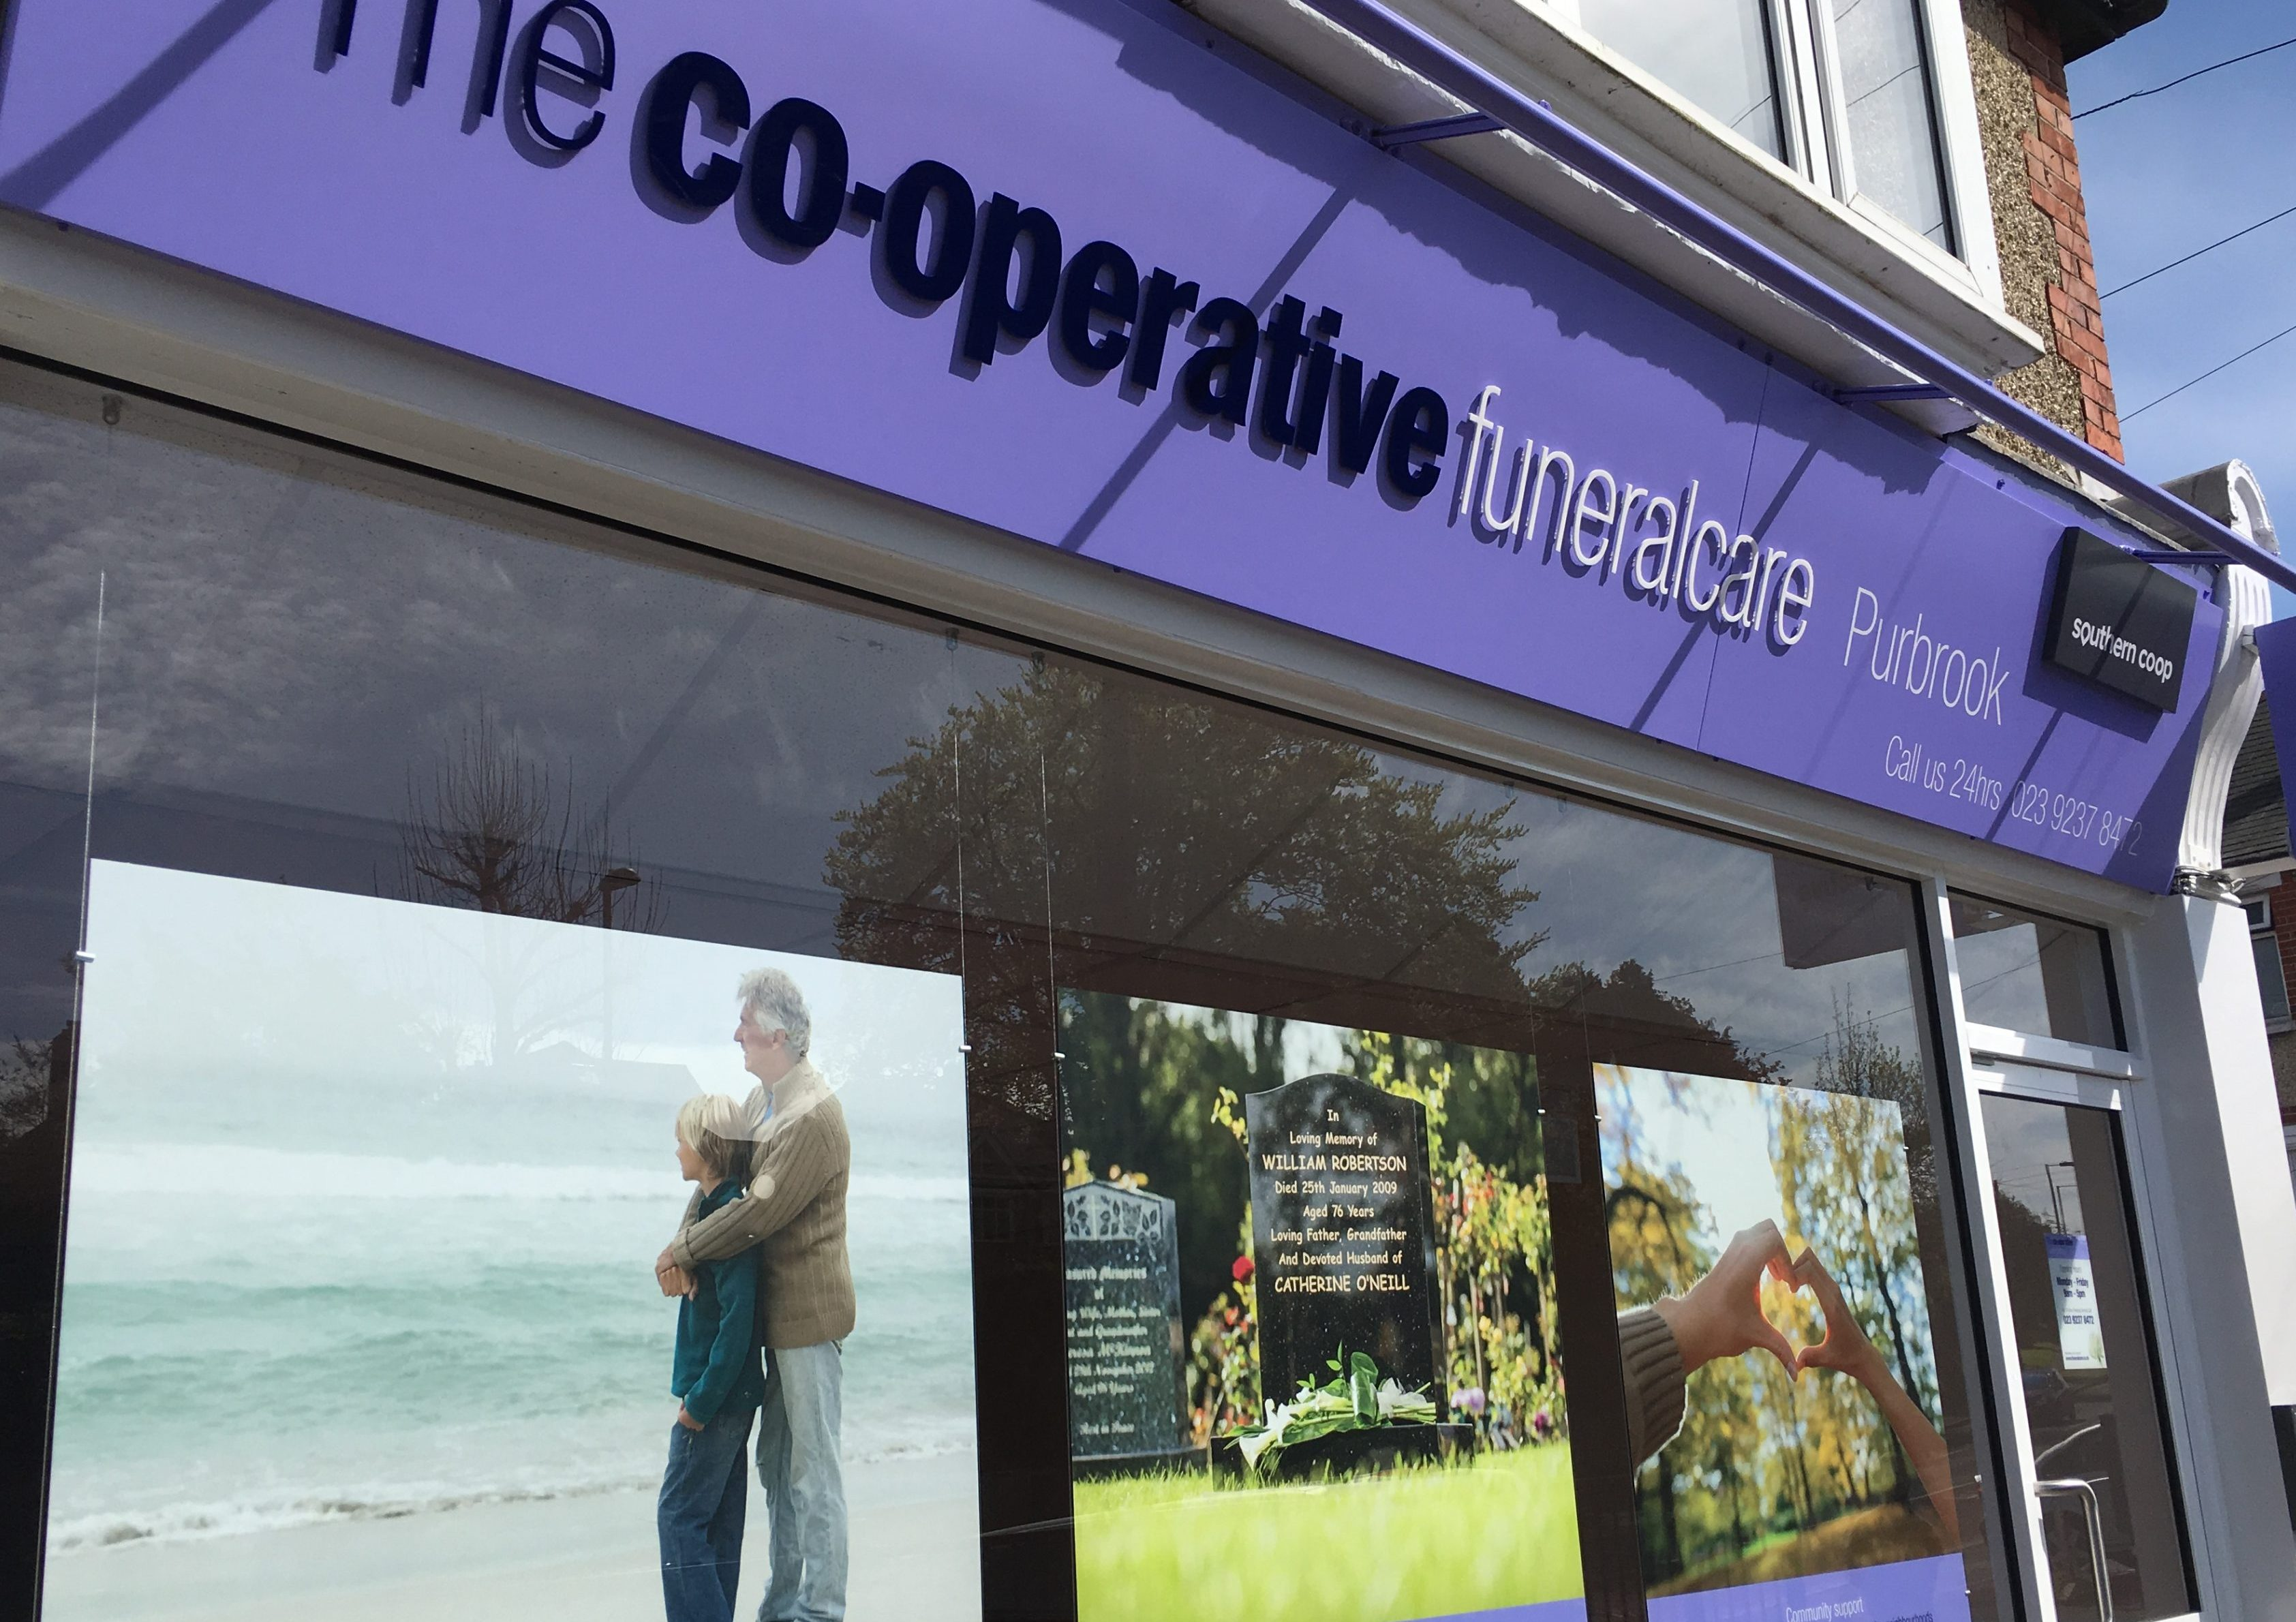 The co-operative funeralcare exterior signage